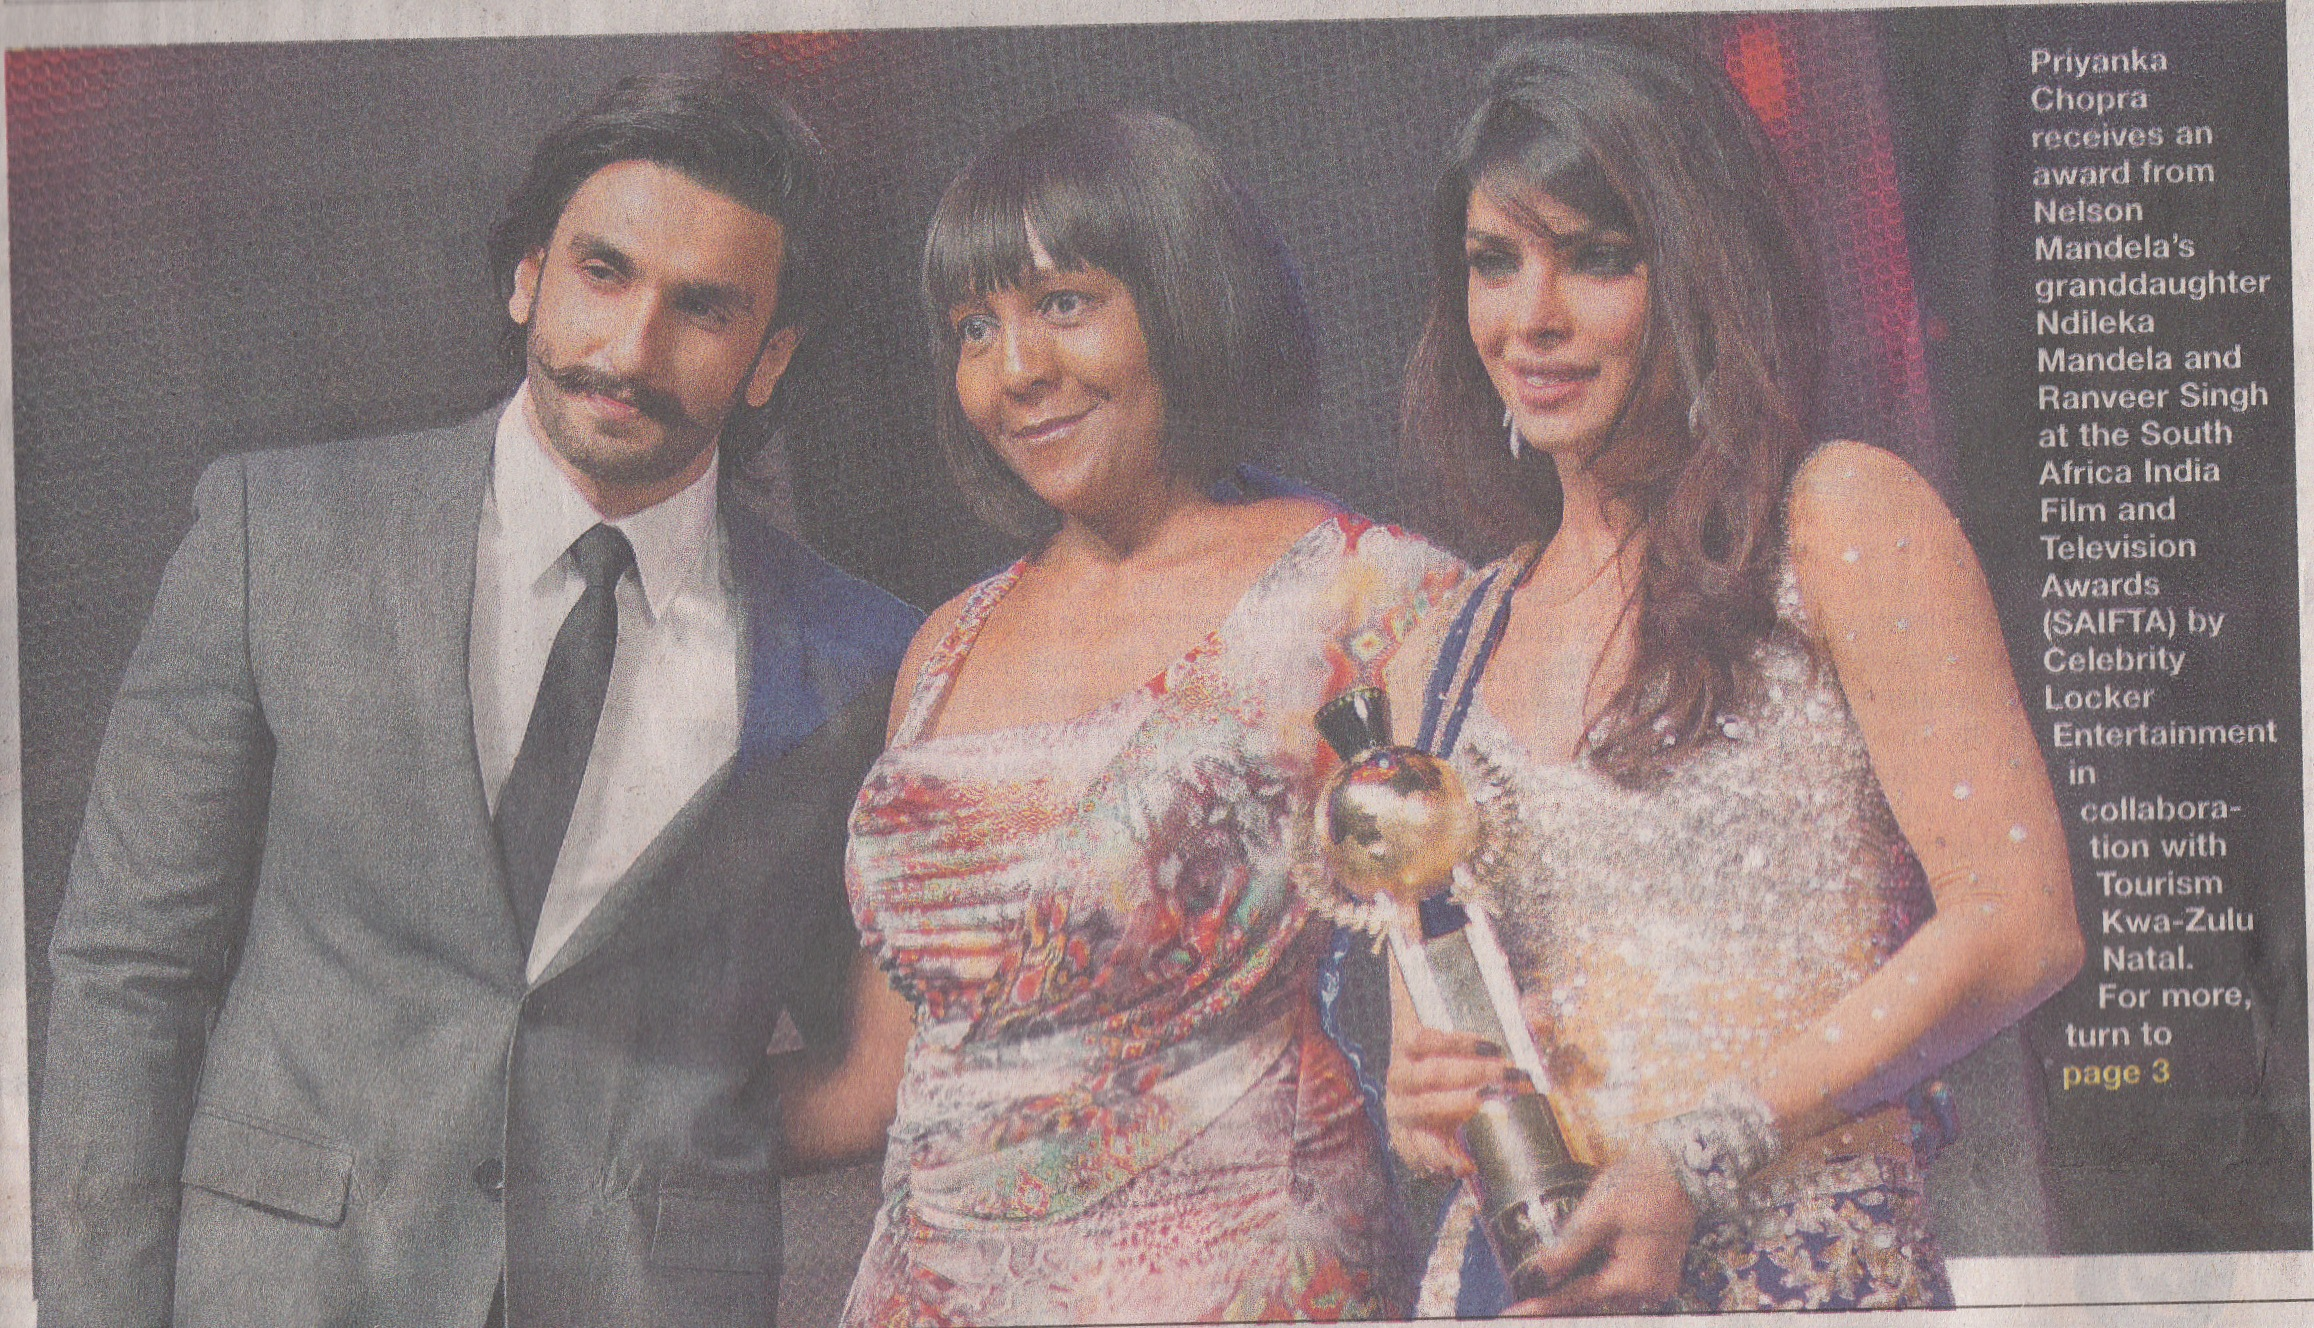 Bombay Times_22nd Septe_Page 1